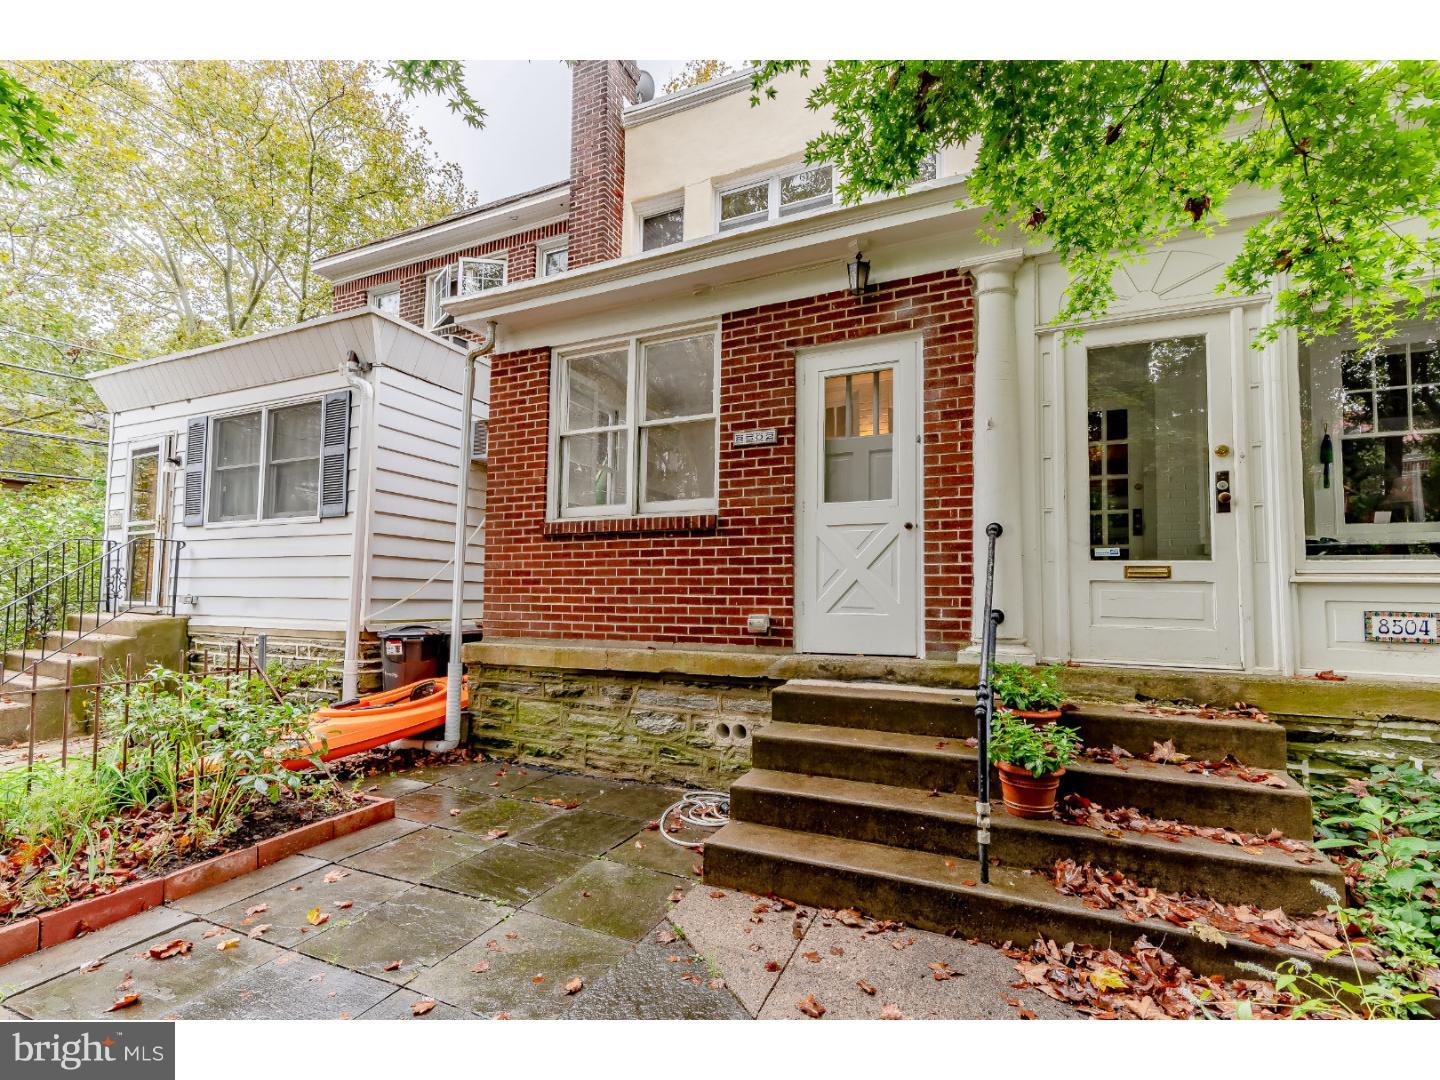 Local Chestnut Hill, PA Real Estate Listings and Homes for Sale | BHGRE